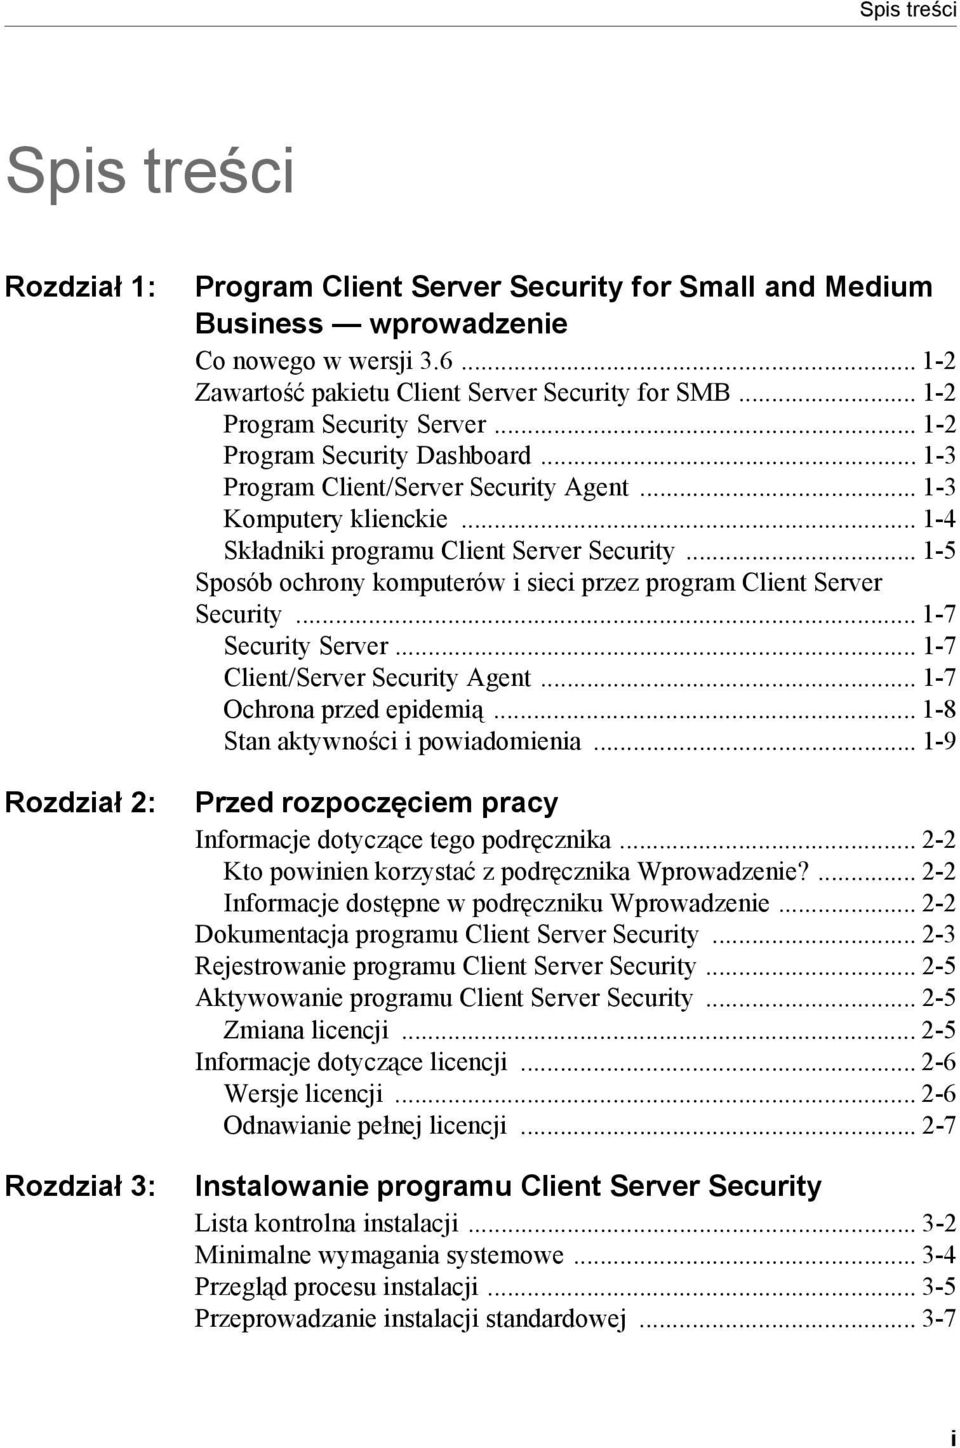 .. 1-4 Składniki programu Client Server Security... 1-5 Sposób ochrony komputerów i sieci przez program Client Server Security... 1-7 Security Server... 1-7 Client/Server Security Agent.